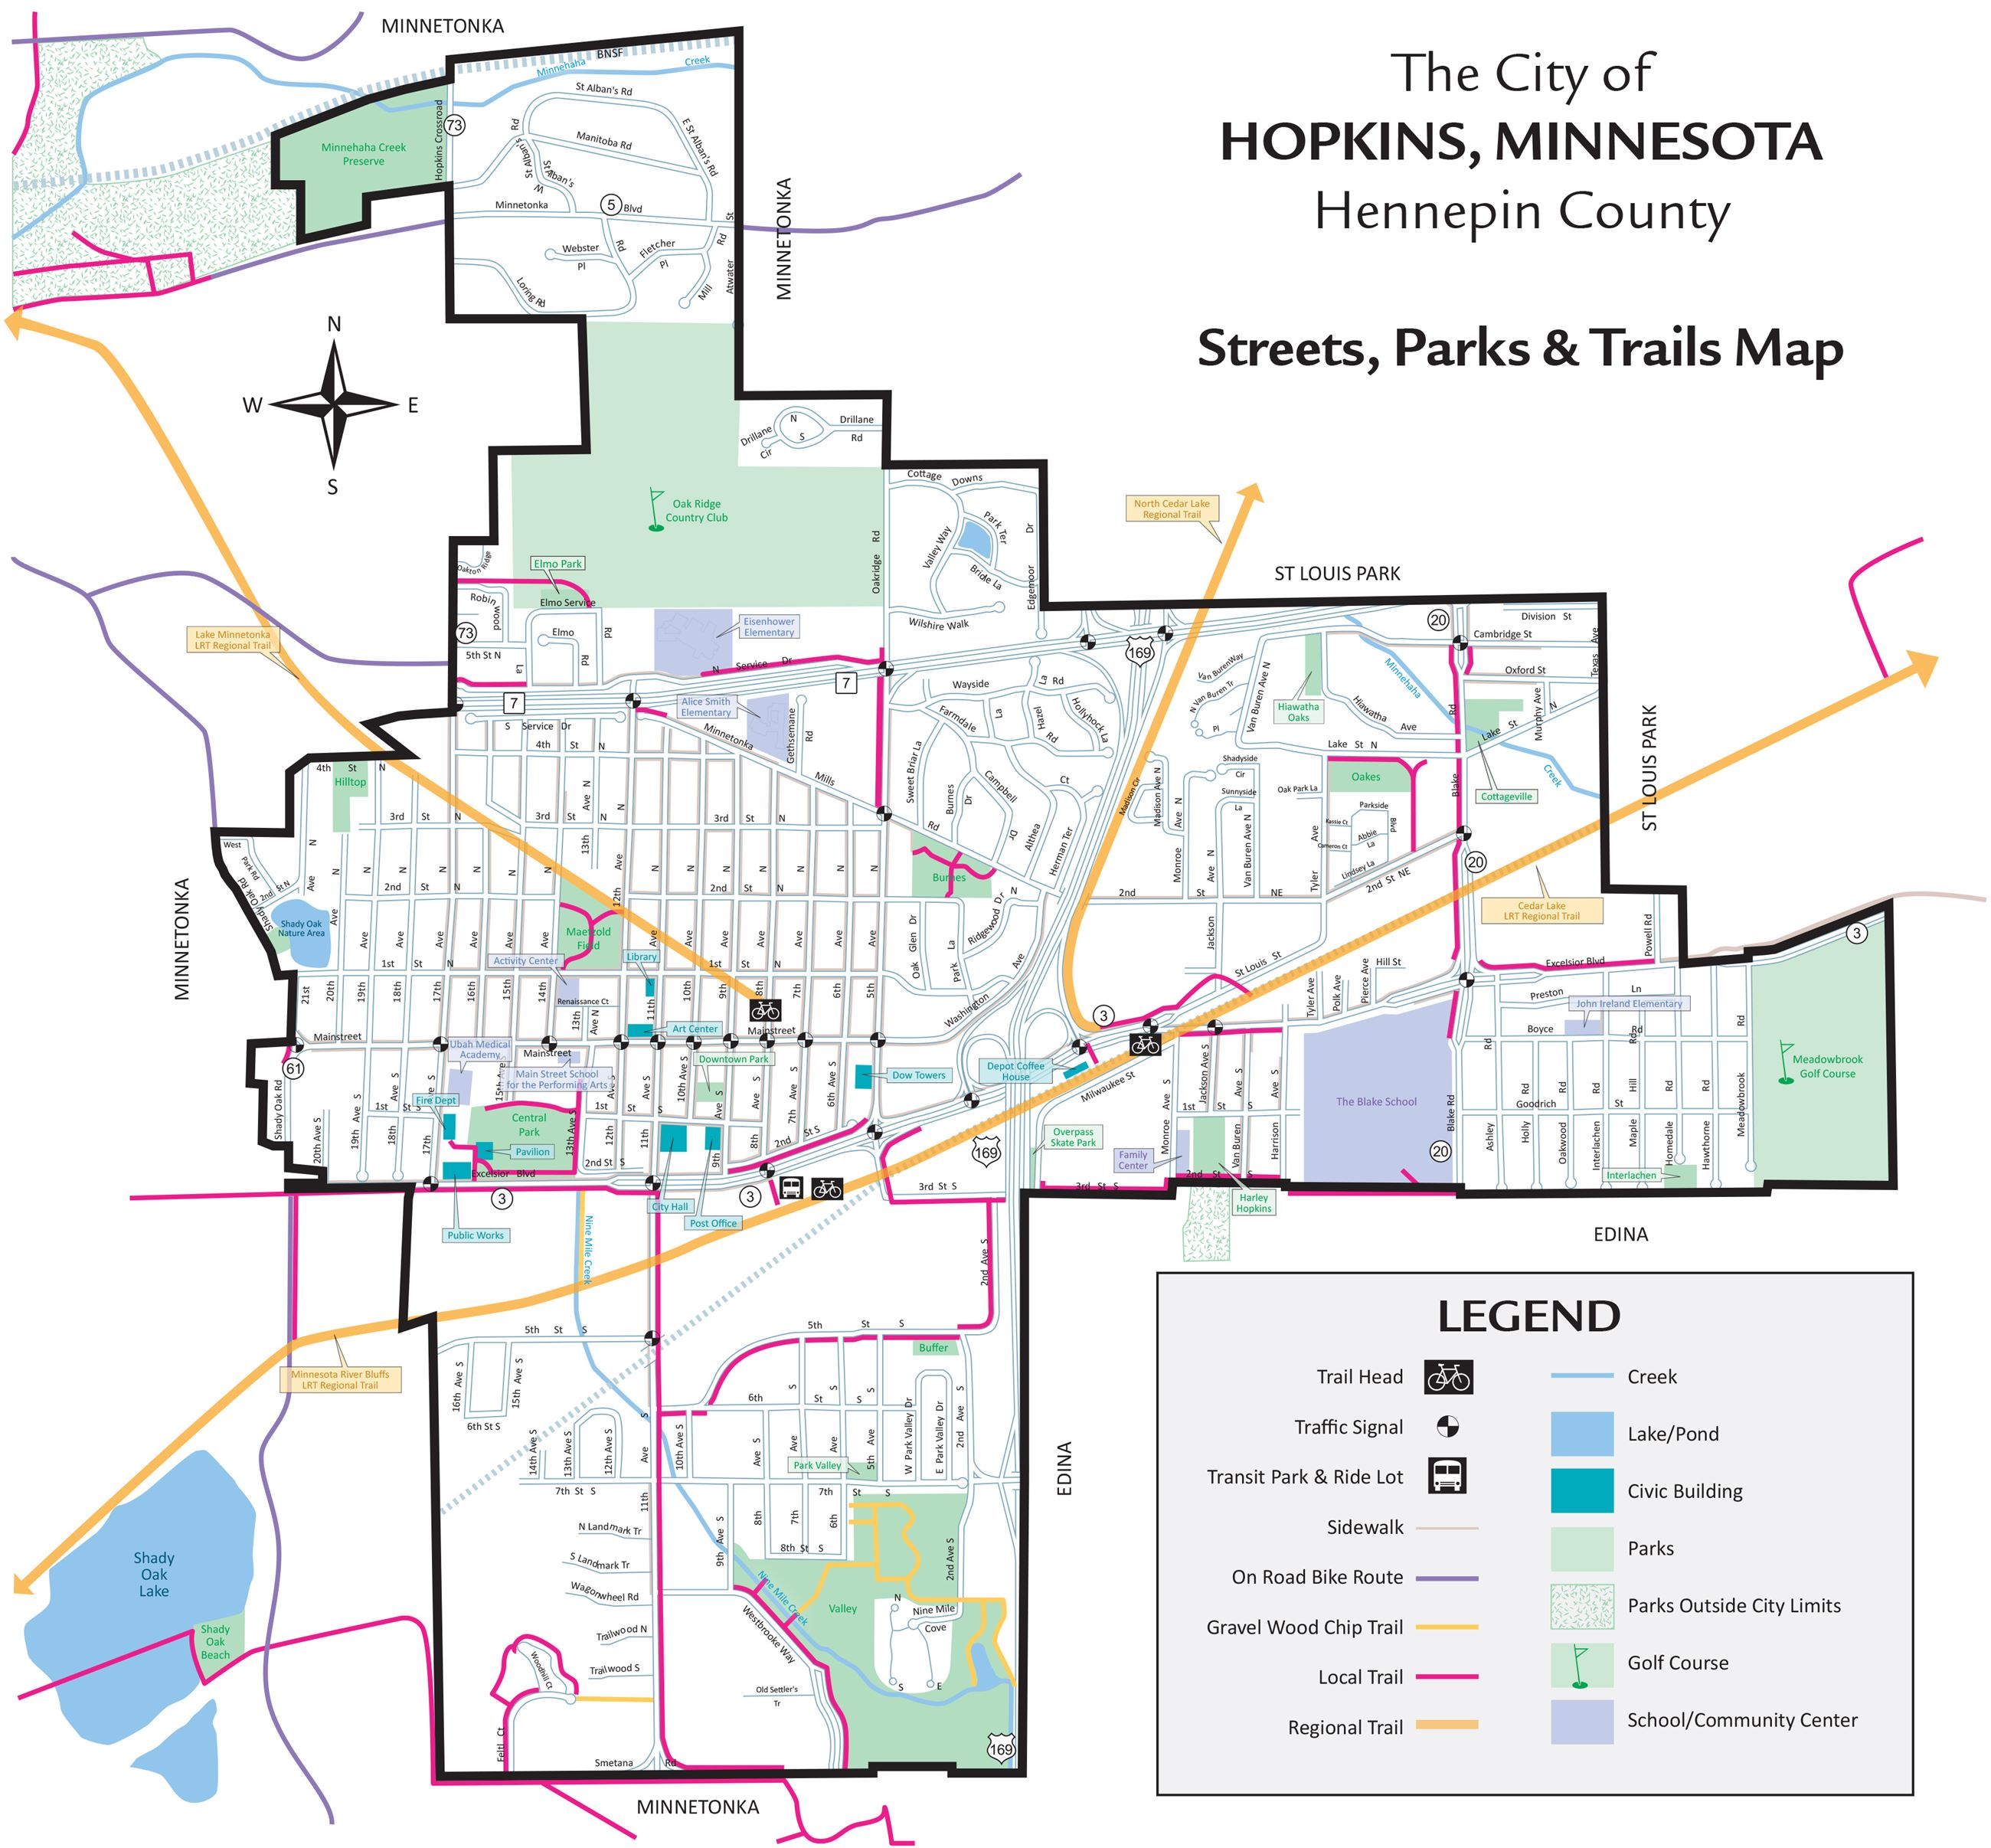 Streets, Parks & Trails Map